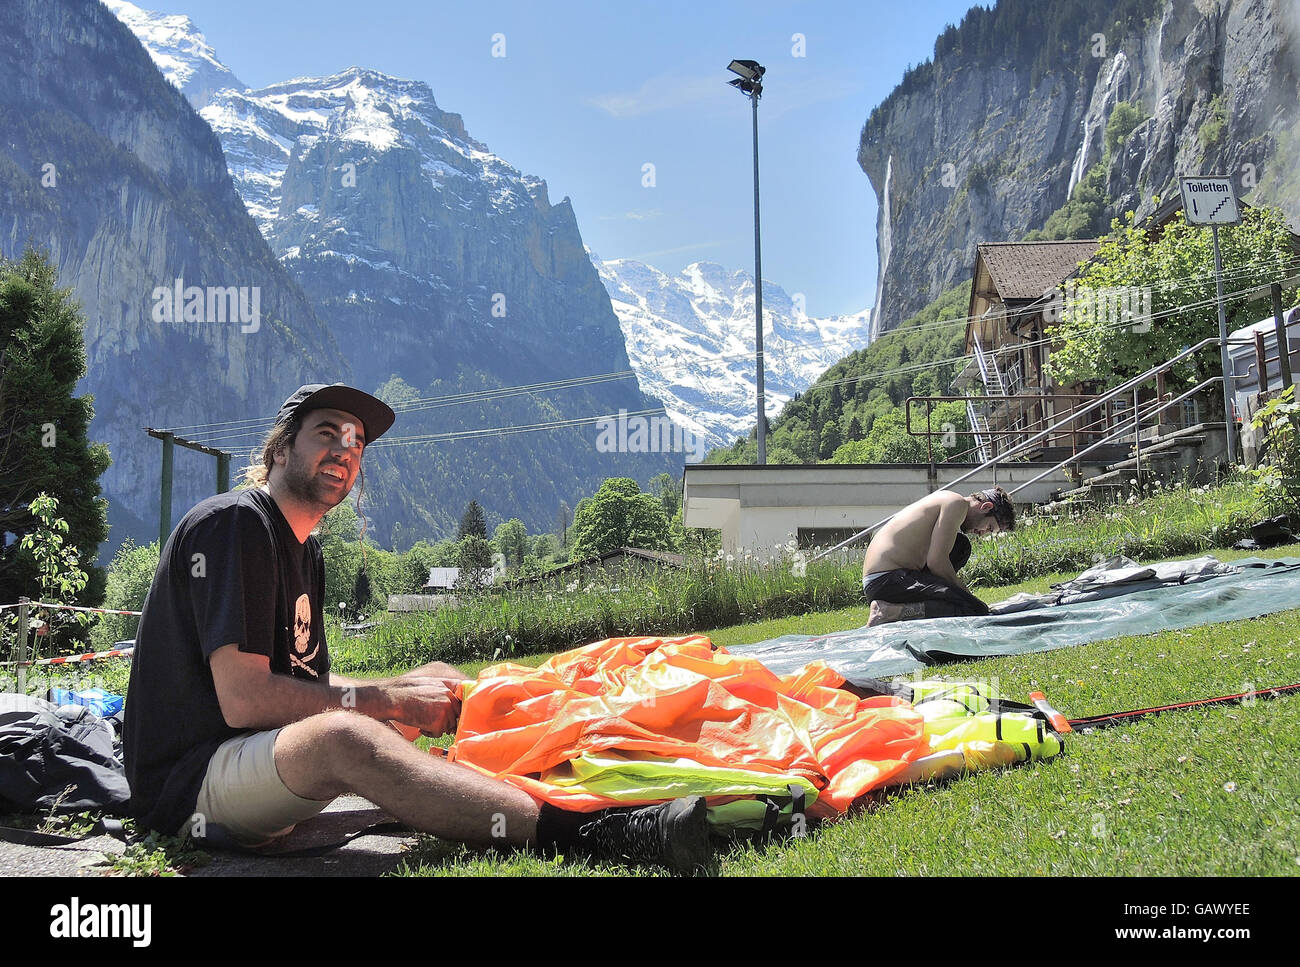 Lauterbrunnen, Switzerland. 26th May, 2016. Bob from Australia packing up his parachute in Lauterbrunnen, Switzerland, - Stock Image